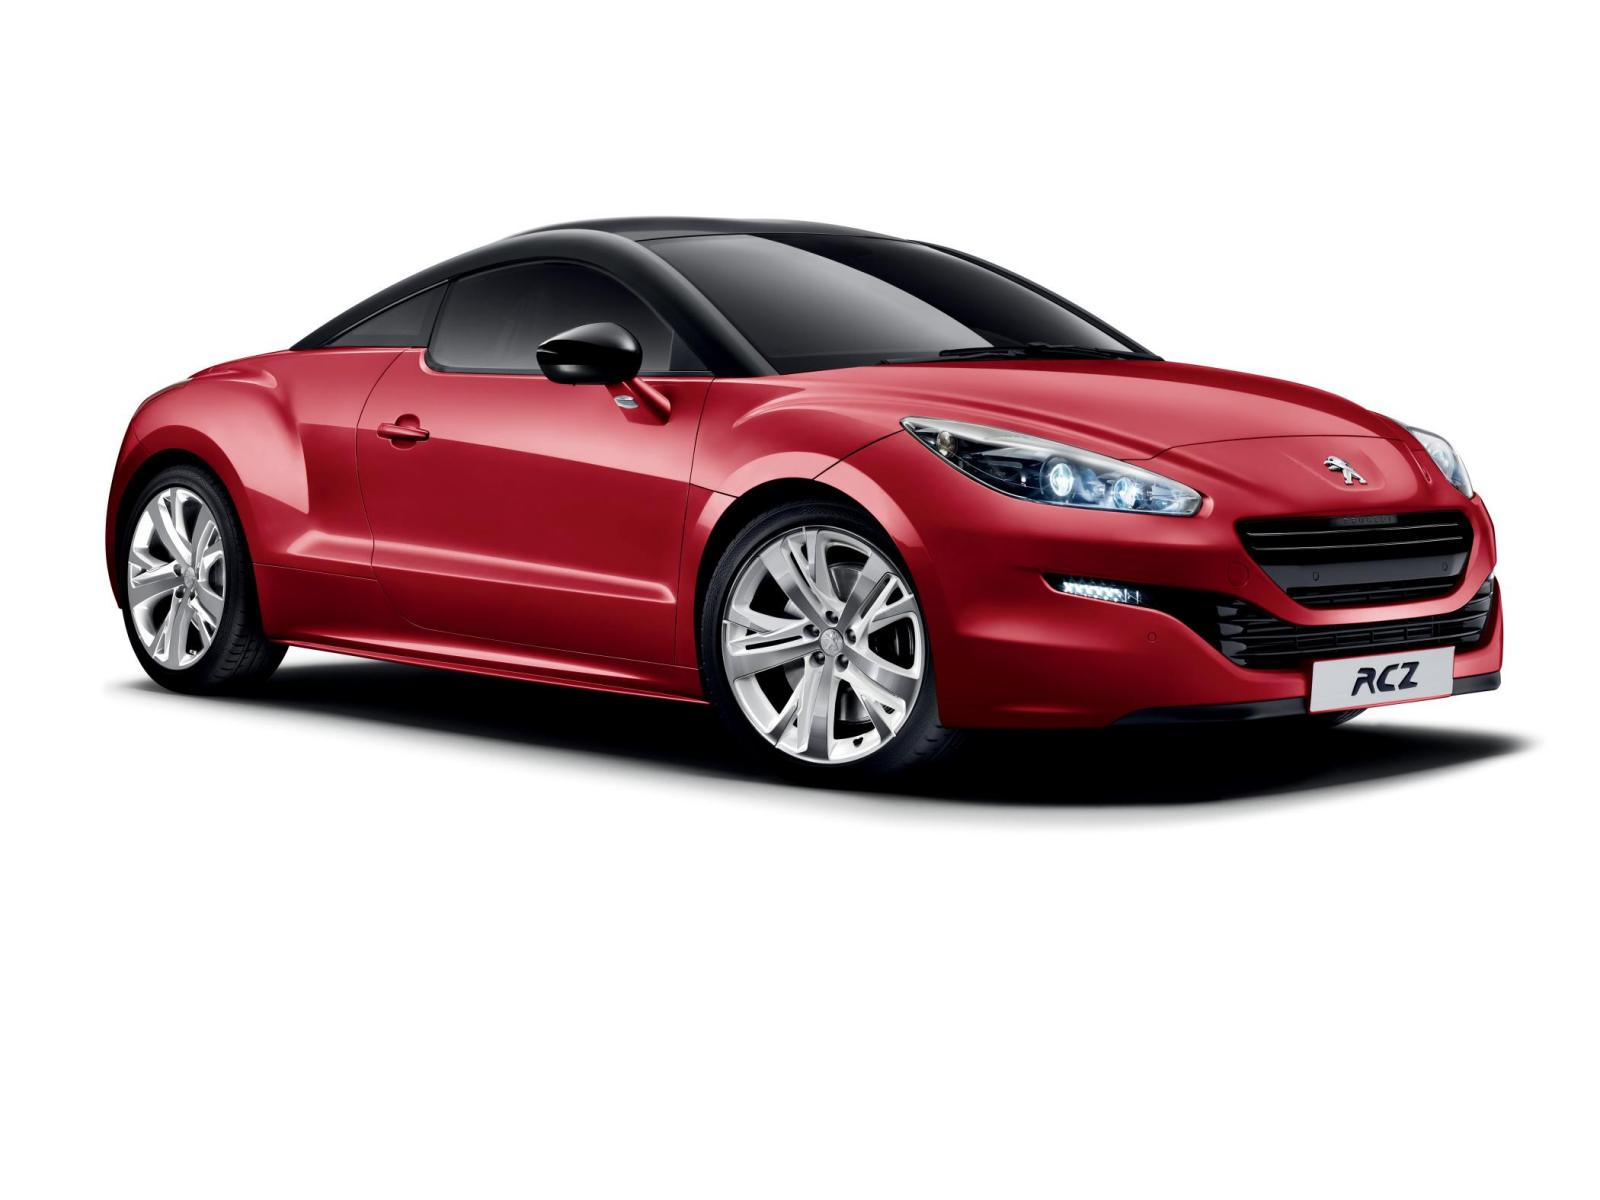 Peugeot Rcz Red Carbon Special Edition Launched In